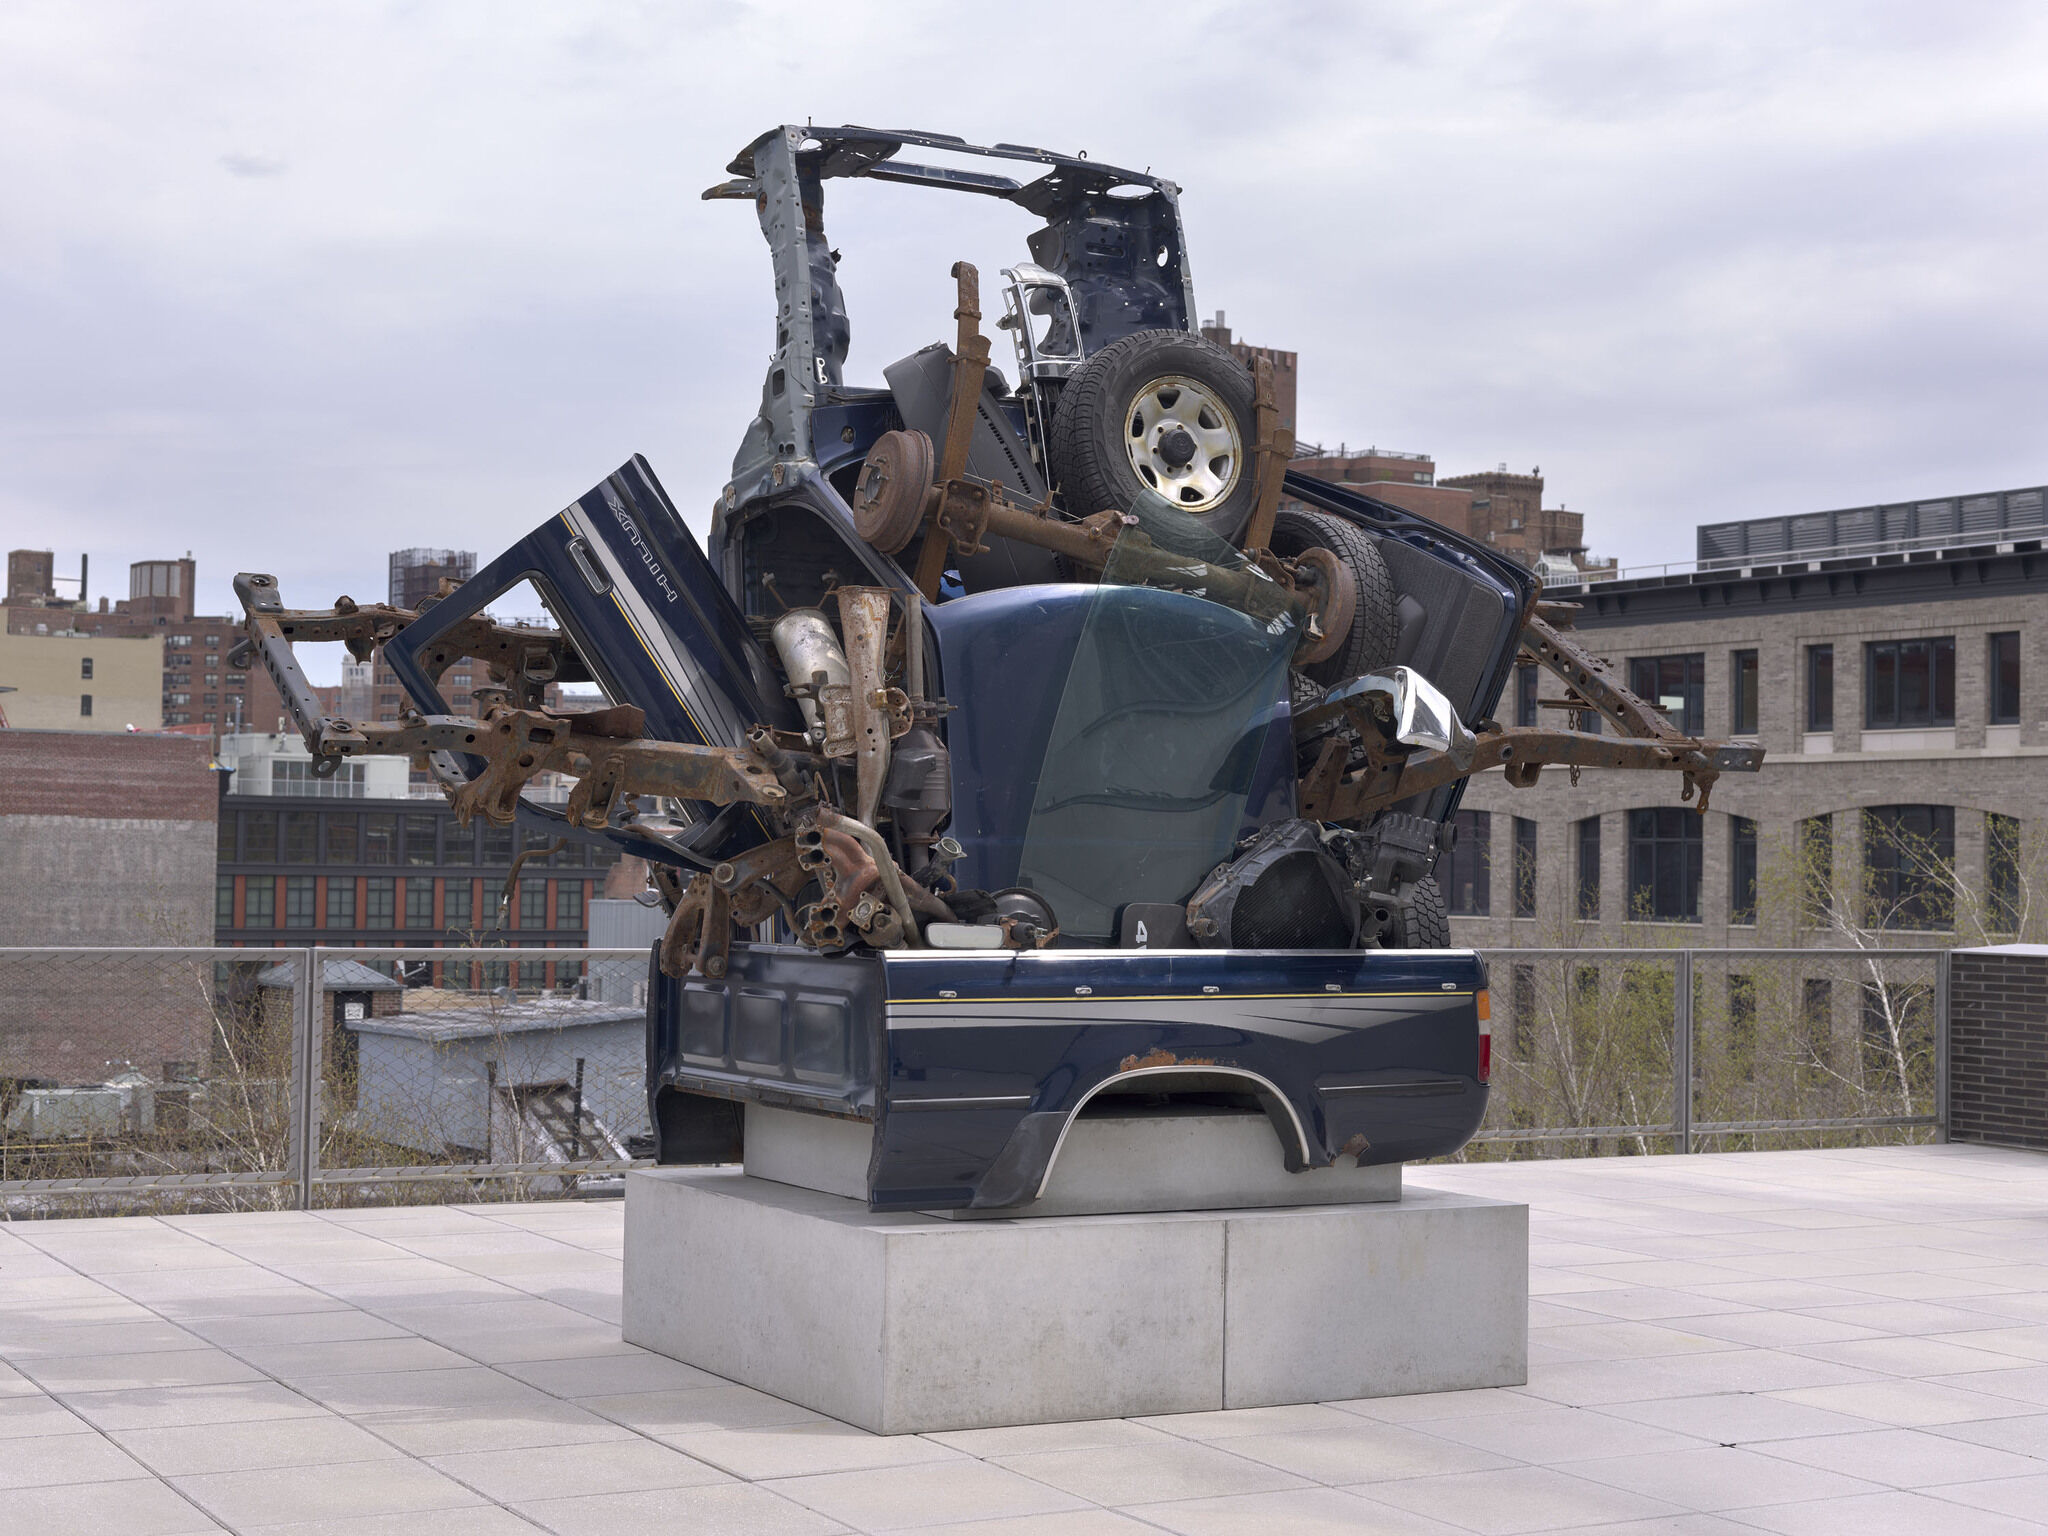 A sculpture constructed from automotive parts positioned on the balcony outside the Whitney.